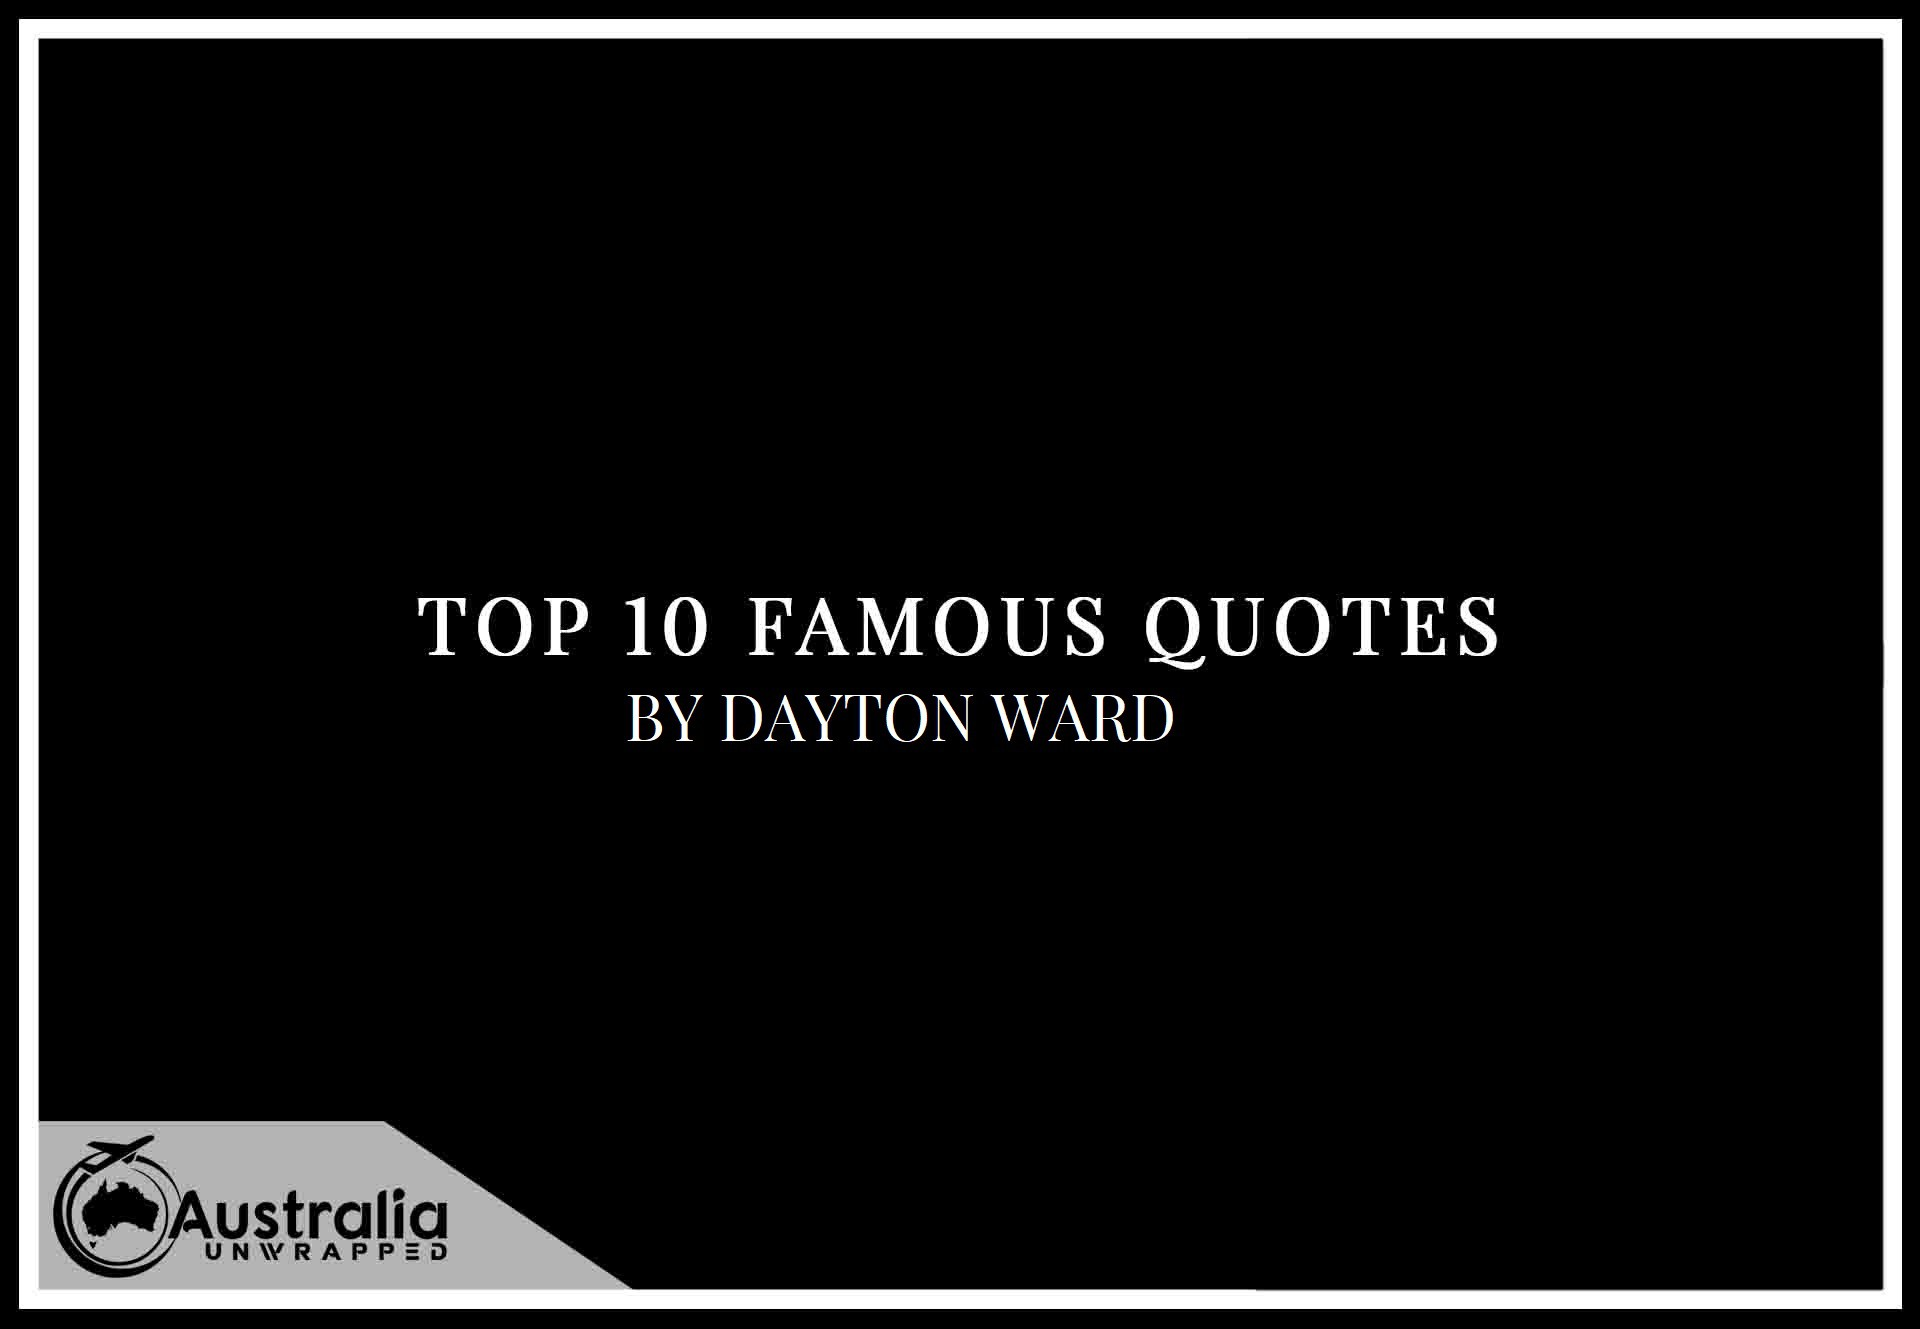 Top 10 Famous Quotes by Author Dayton Ward